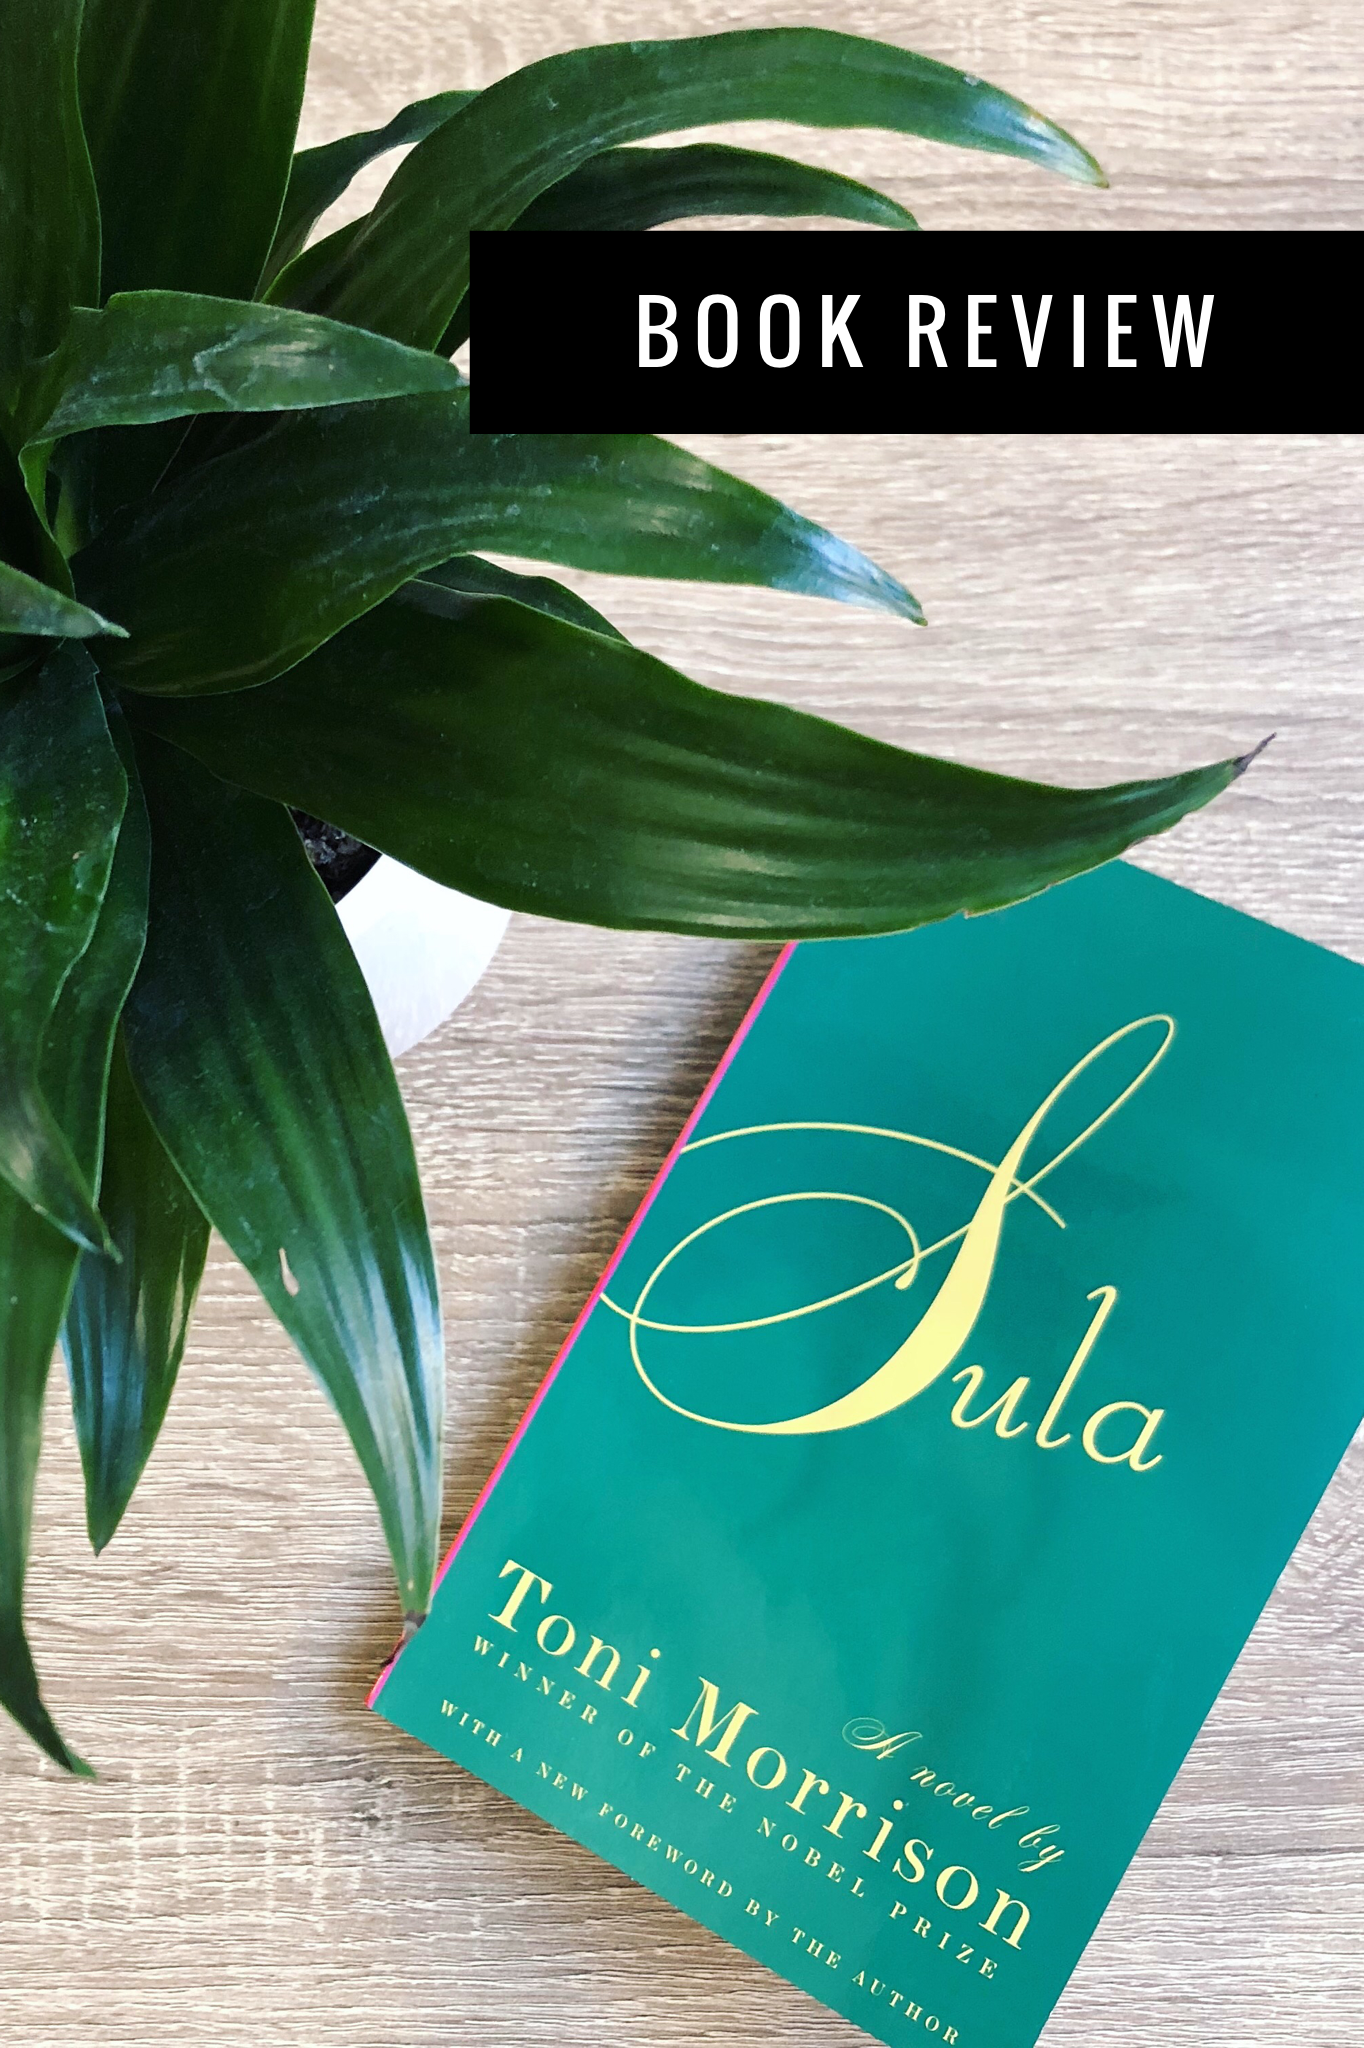 Sula By Toni Morrison Book Review Toni Morrison Book